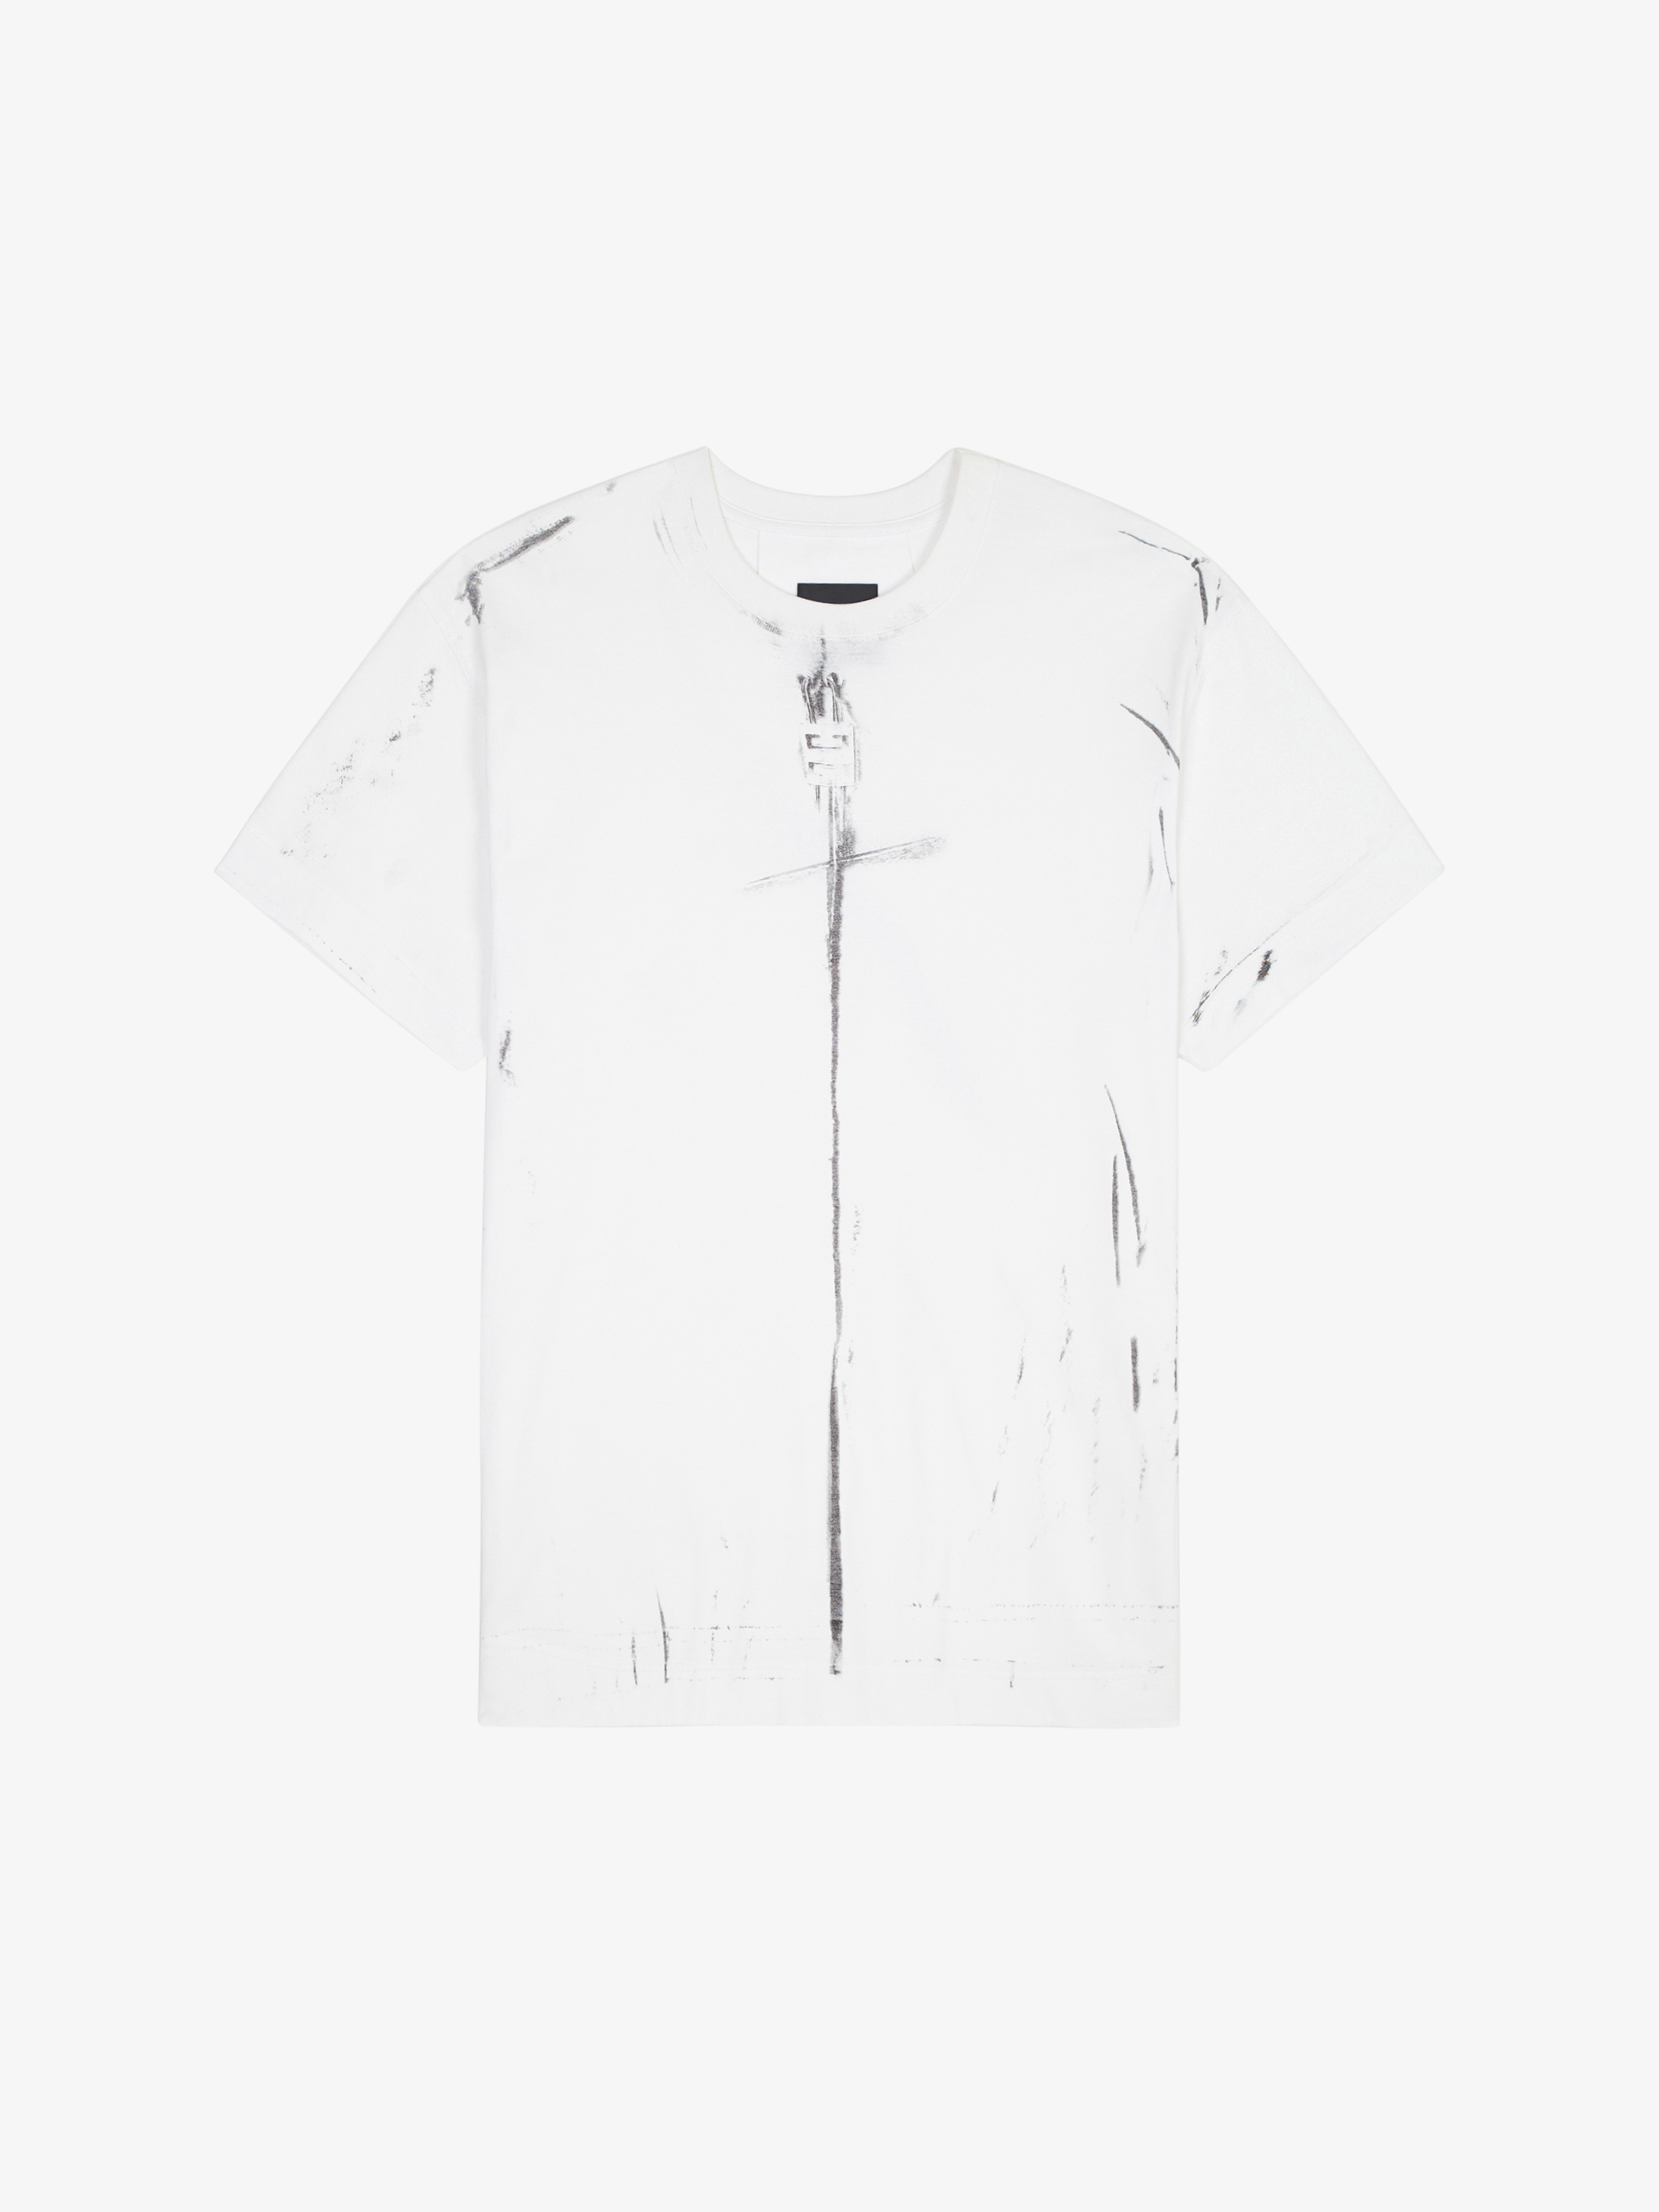 GIVENCHY trompe-l'œil effect oversized t-shirt